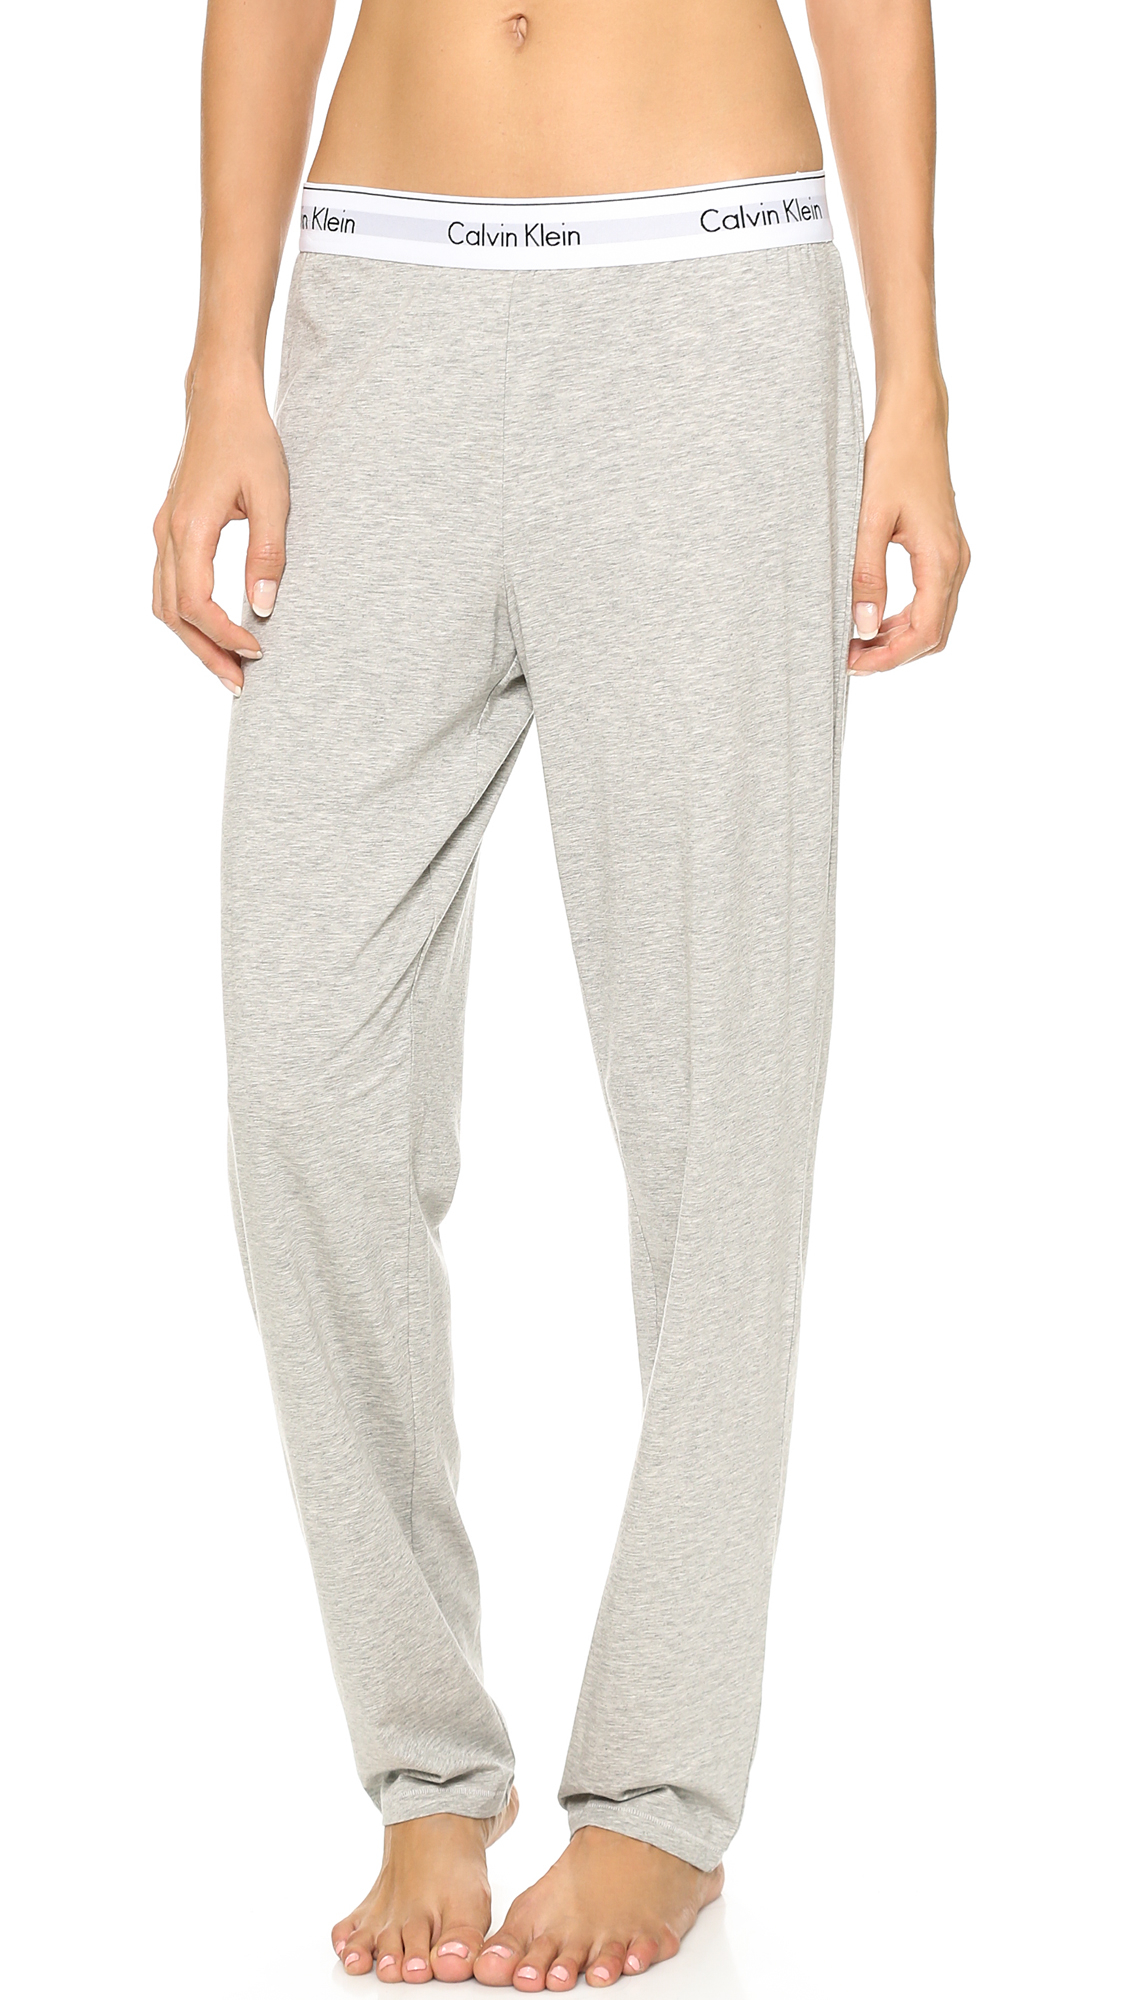 22 model Calvin Klein Pj Pants Womens – playzoa.com